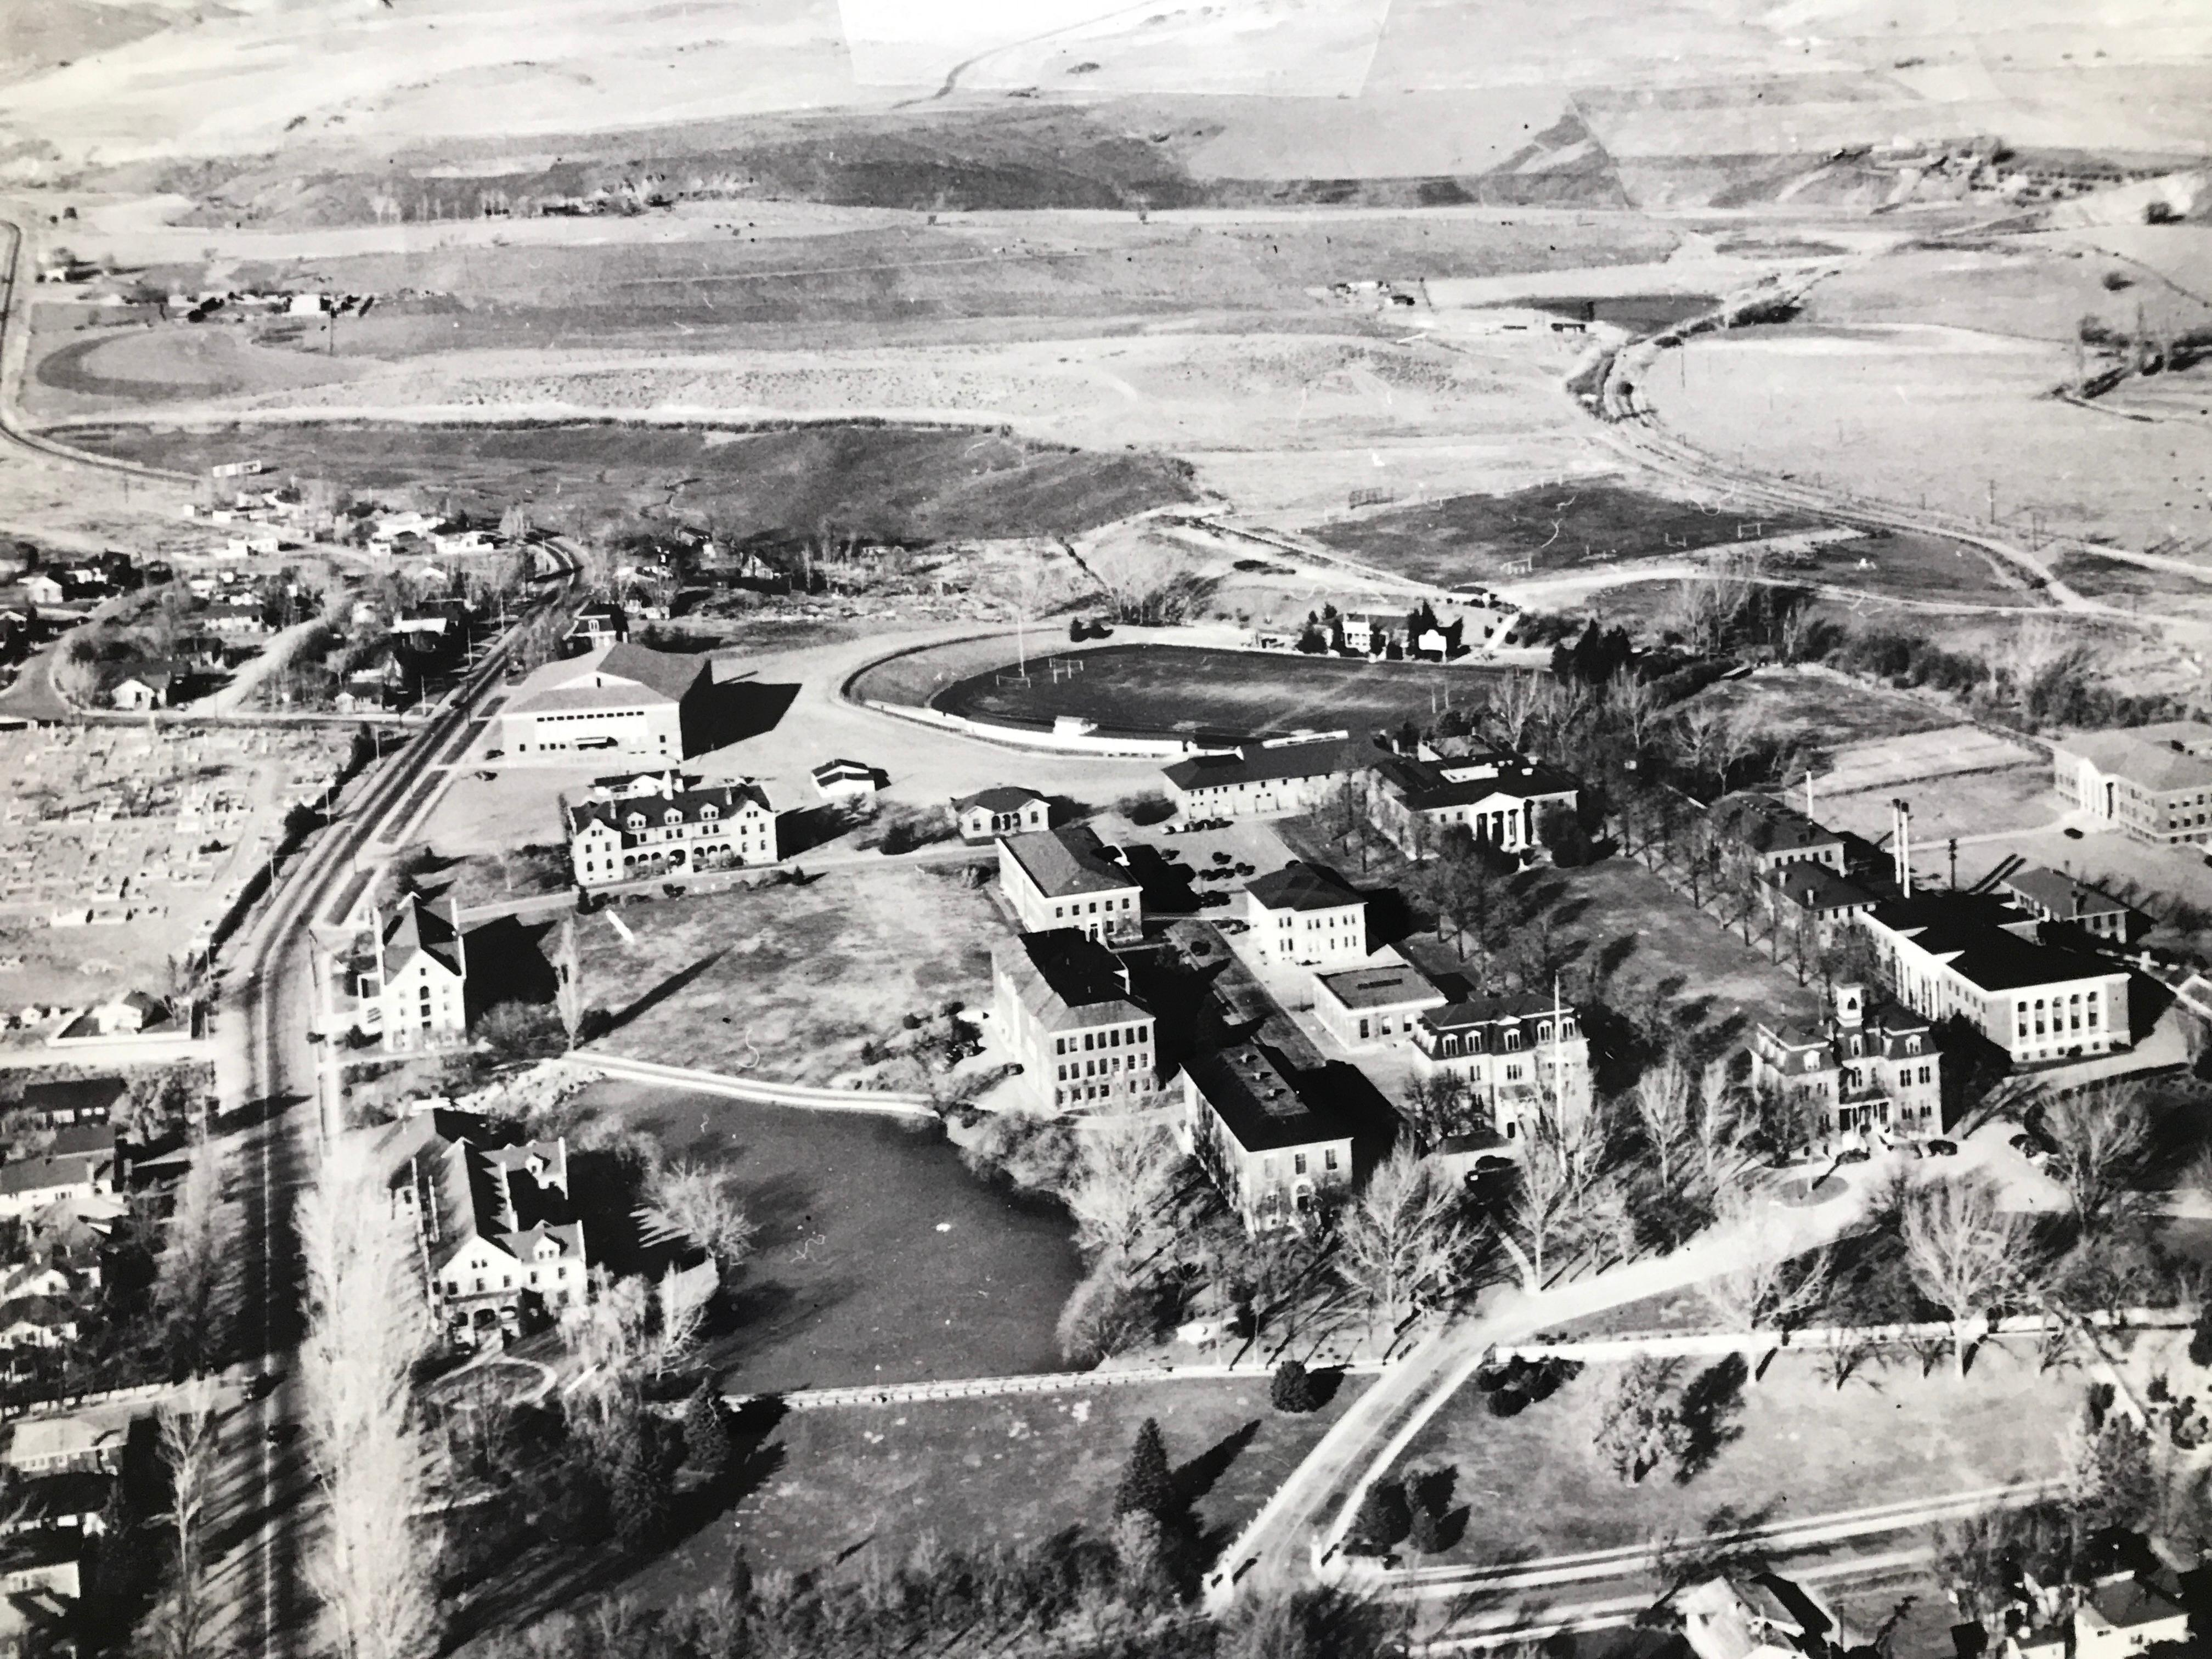 The quadrangle at the University of Nevada was modeled on Thomas Jefferson's design of the University of Virginia lawn. In this 1944 aerial view of the campus, the tree-lined quad is seen on the right with the Mackay School of Mines at the far end, and Morrill Hall (1886) in the foreground. (Photo courtesy: Nevada Historical Society)